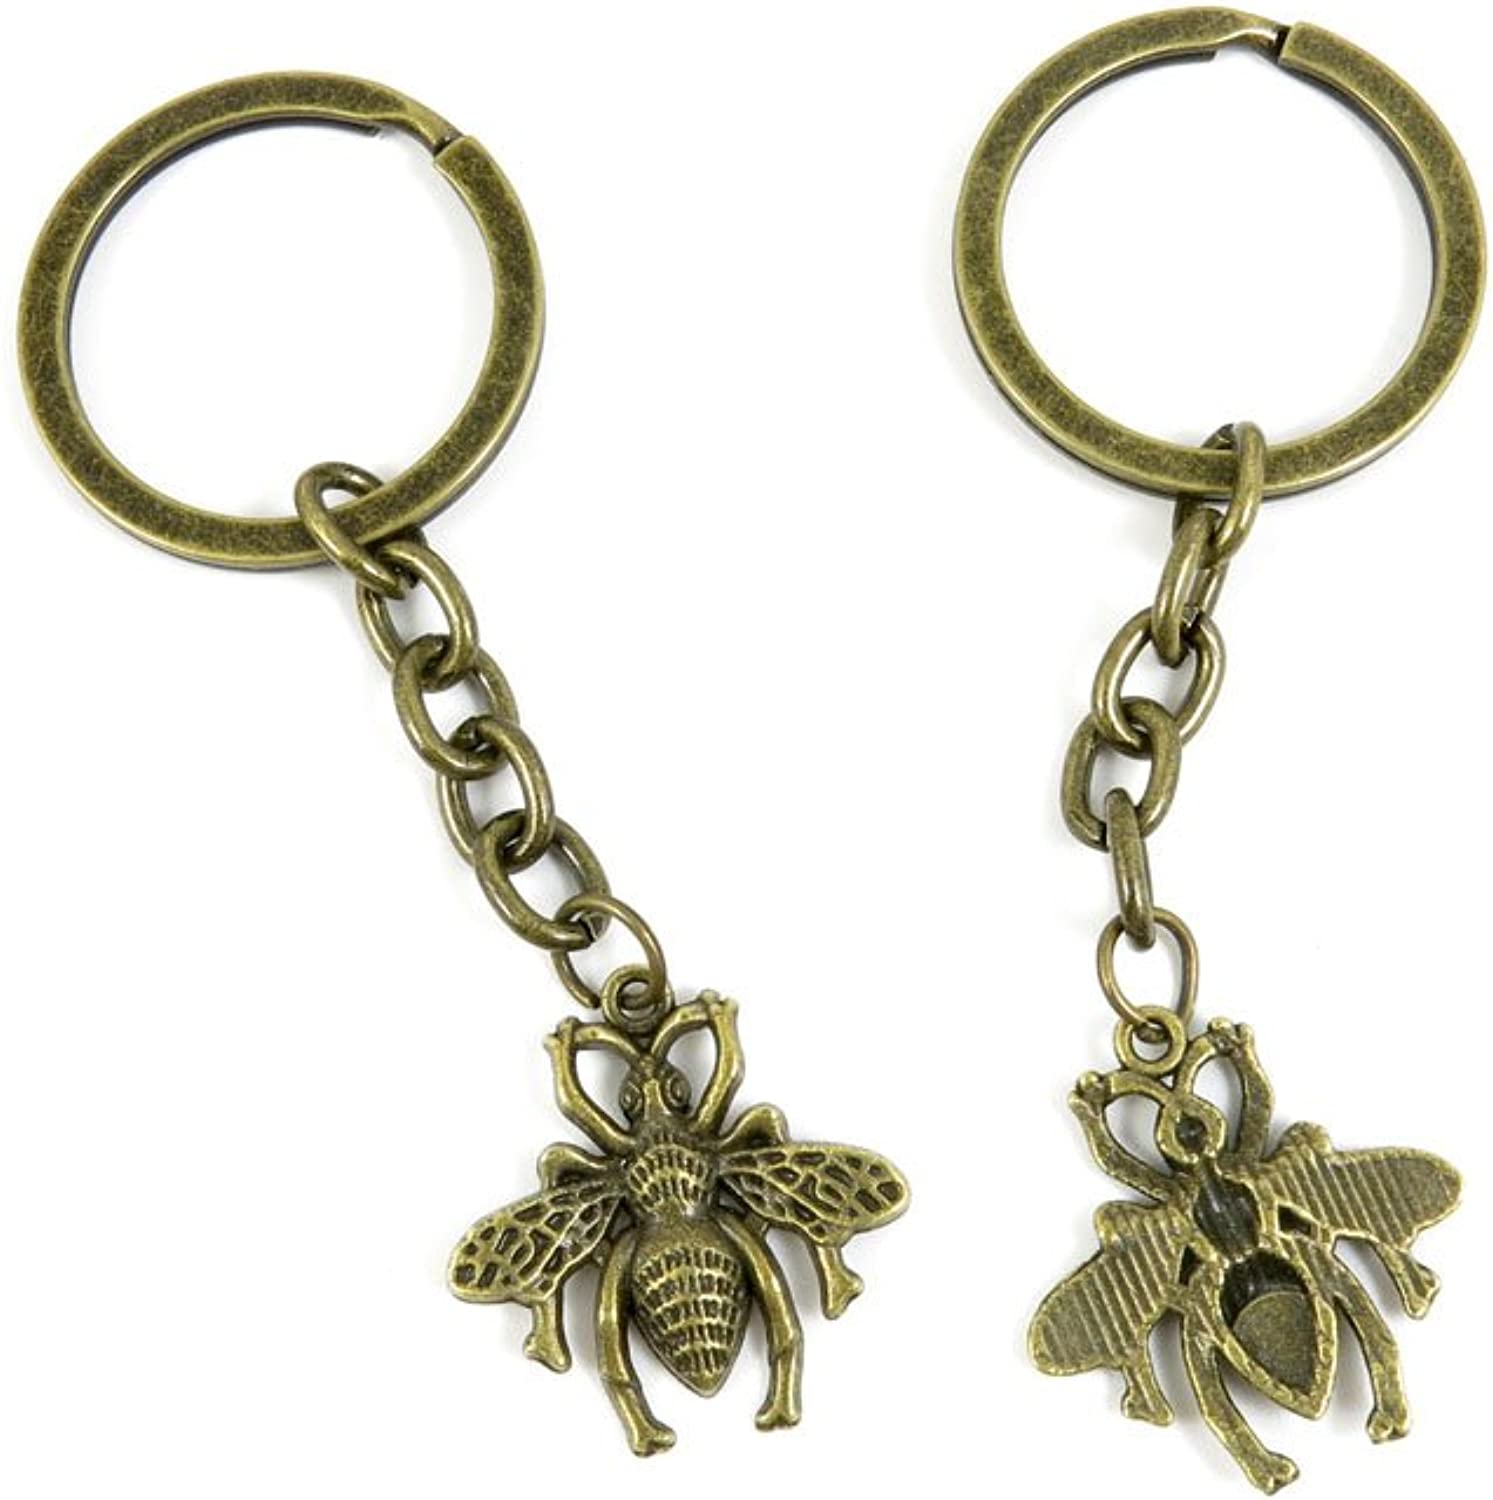 190 Pieces Fashion Jewelry Keyring Keychain Door Car Key Tag Ring Chain Supplier Supply Wholesale Bulk Lots A1XX2 Bee